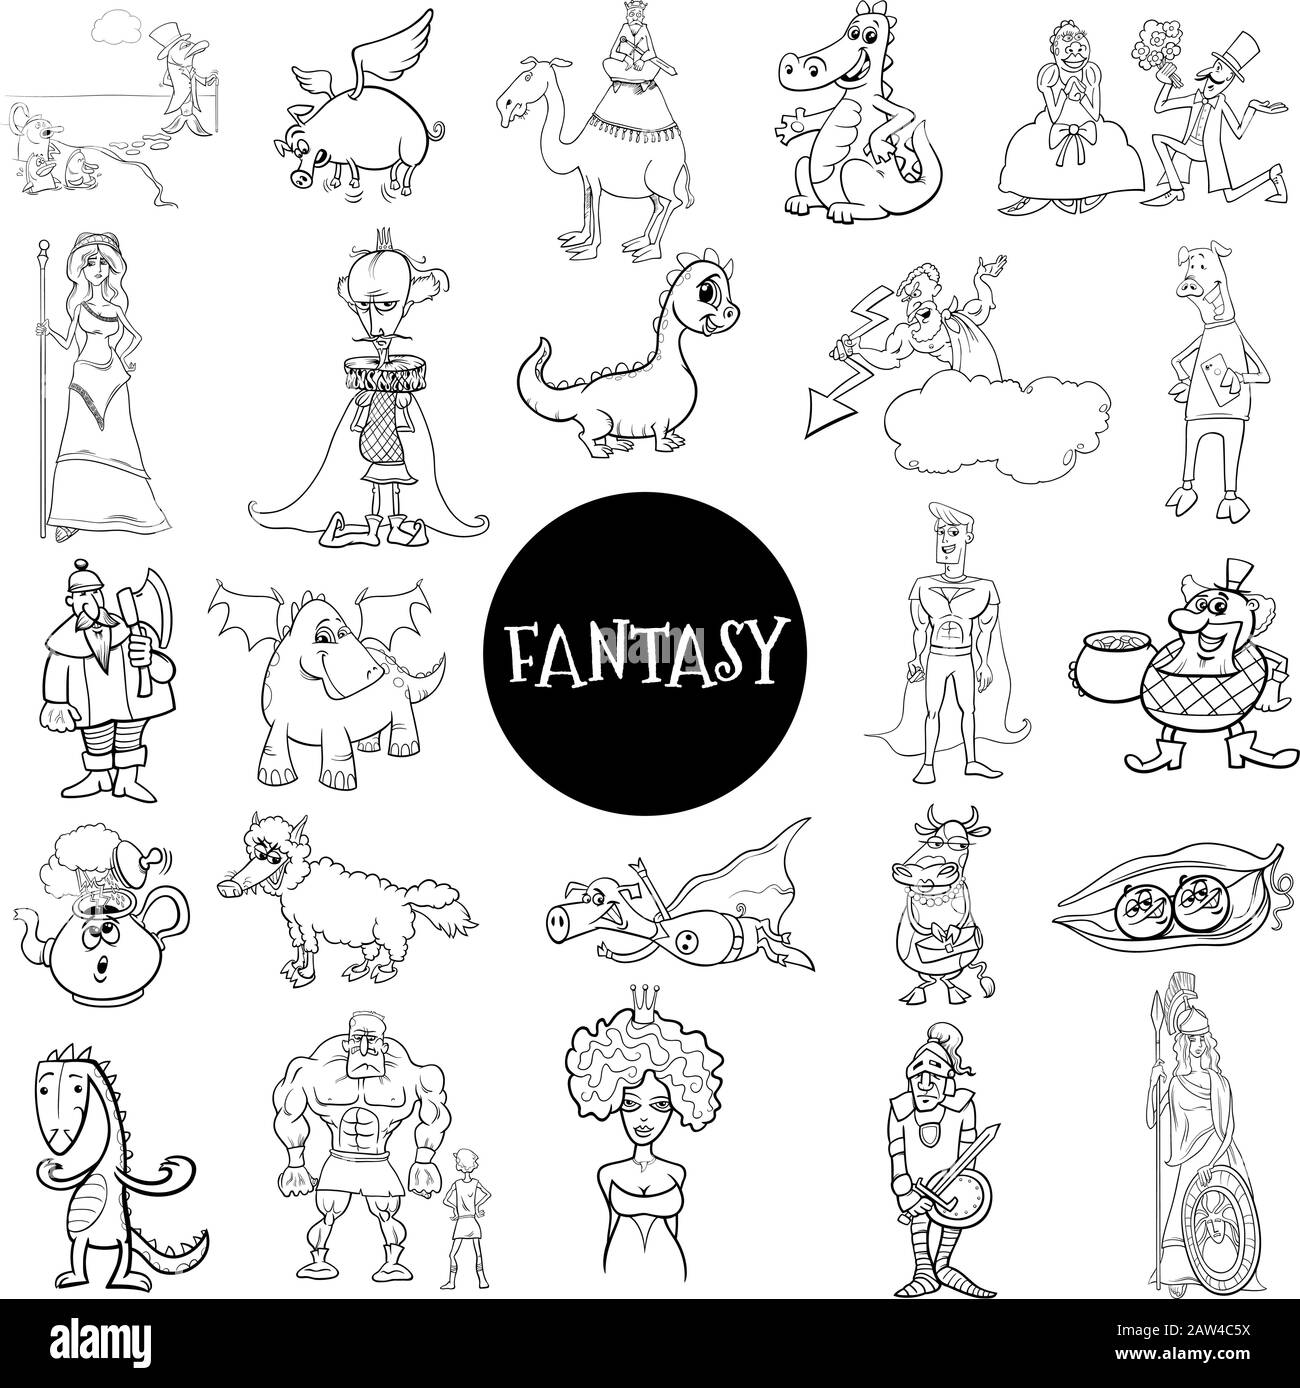 Black and White Cartoon Illustration of Fantasy or Fairy Tale Comic Characters Large Set Coloring Book Page Stock Vector